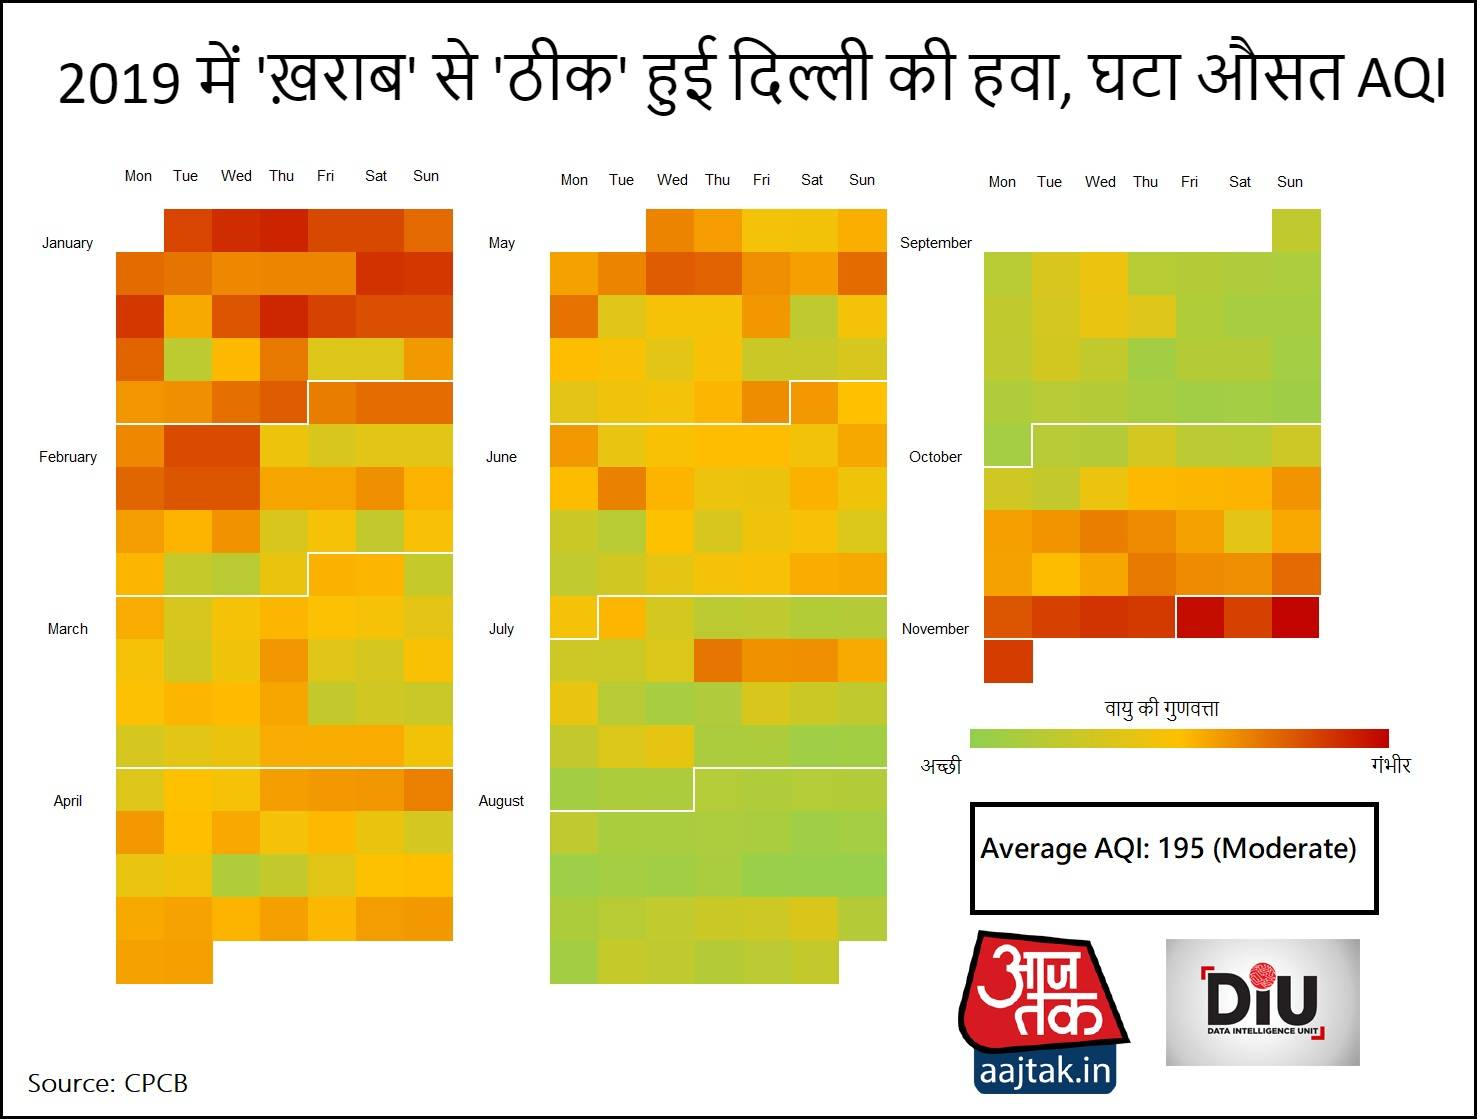 aqi-2019-delhi-hindi_110519104543.jpg